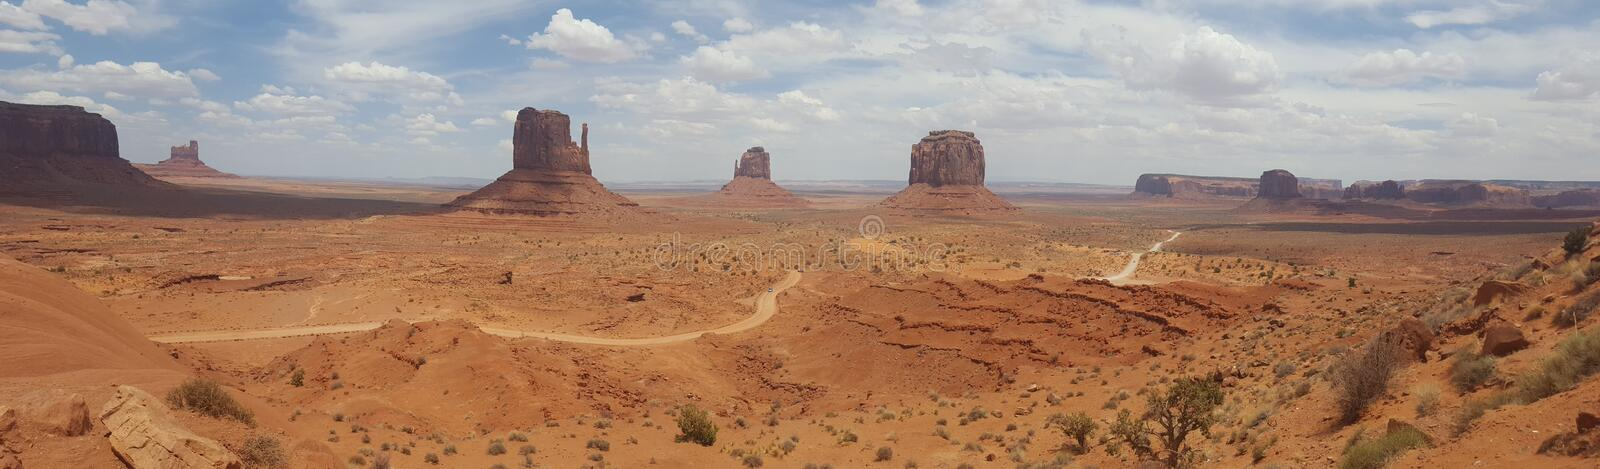 Plain Panorama United States Monument Valley Arizona stockfotografie